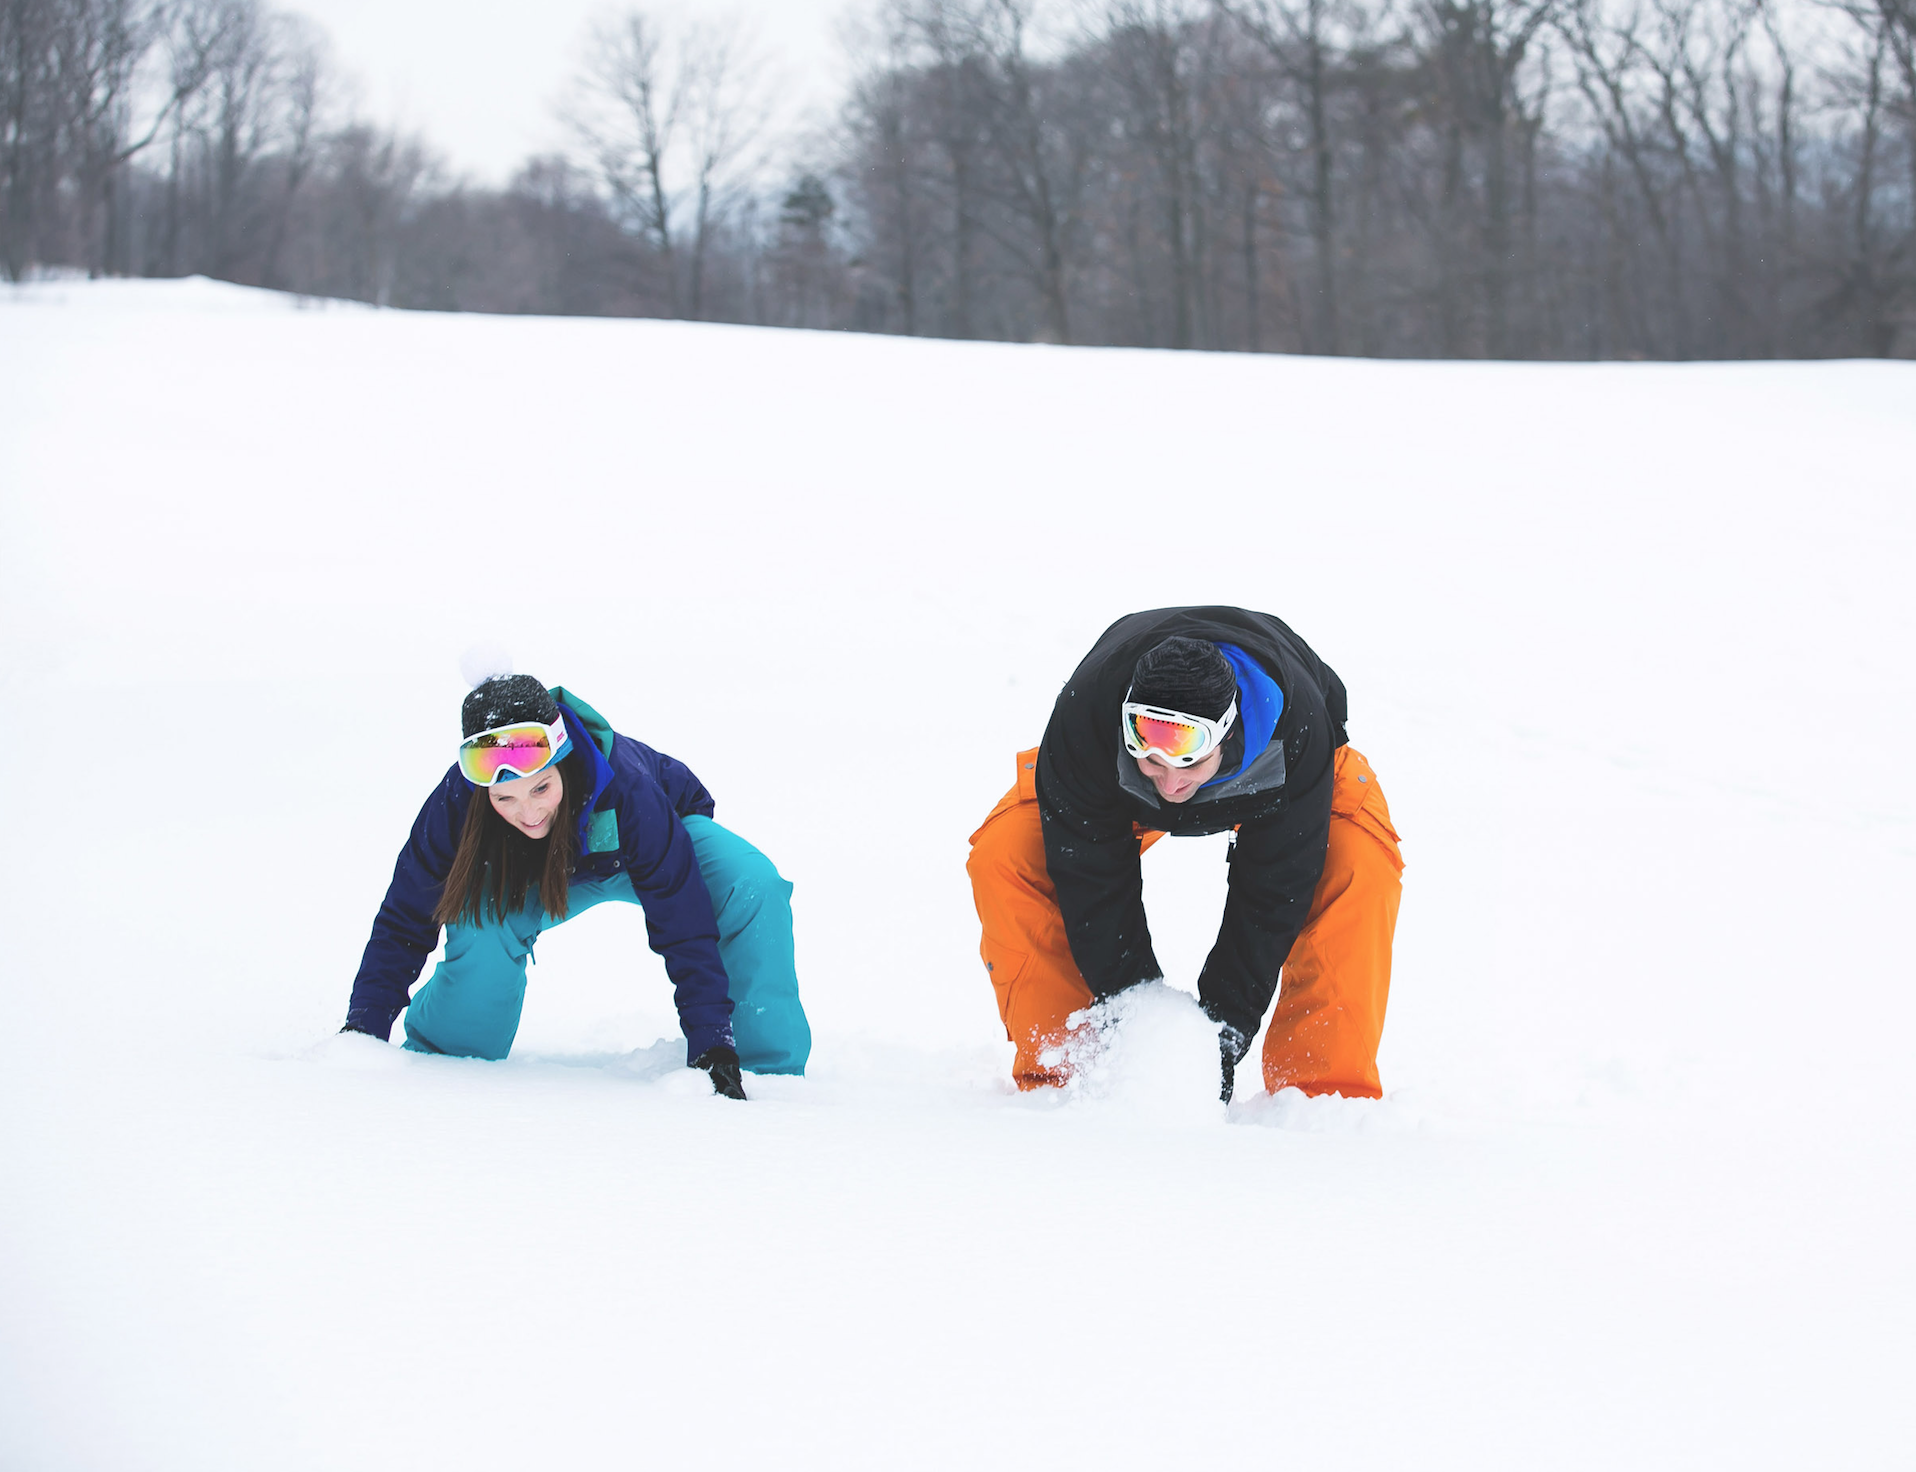 Engagement-Photos-Hamilton-Niagara-Toronto-Burlington-Oakville-Photographer-Engaged-Ring-Photography-Snowboarding-Winter-Moments-by-Lauren-Image-13.png